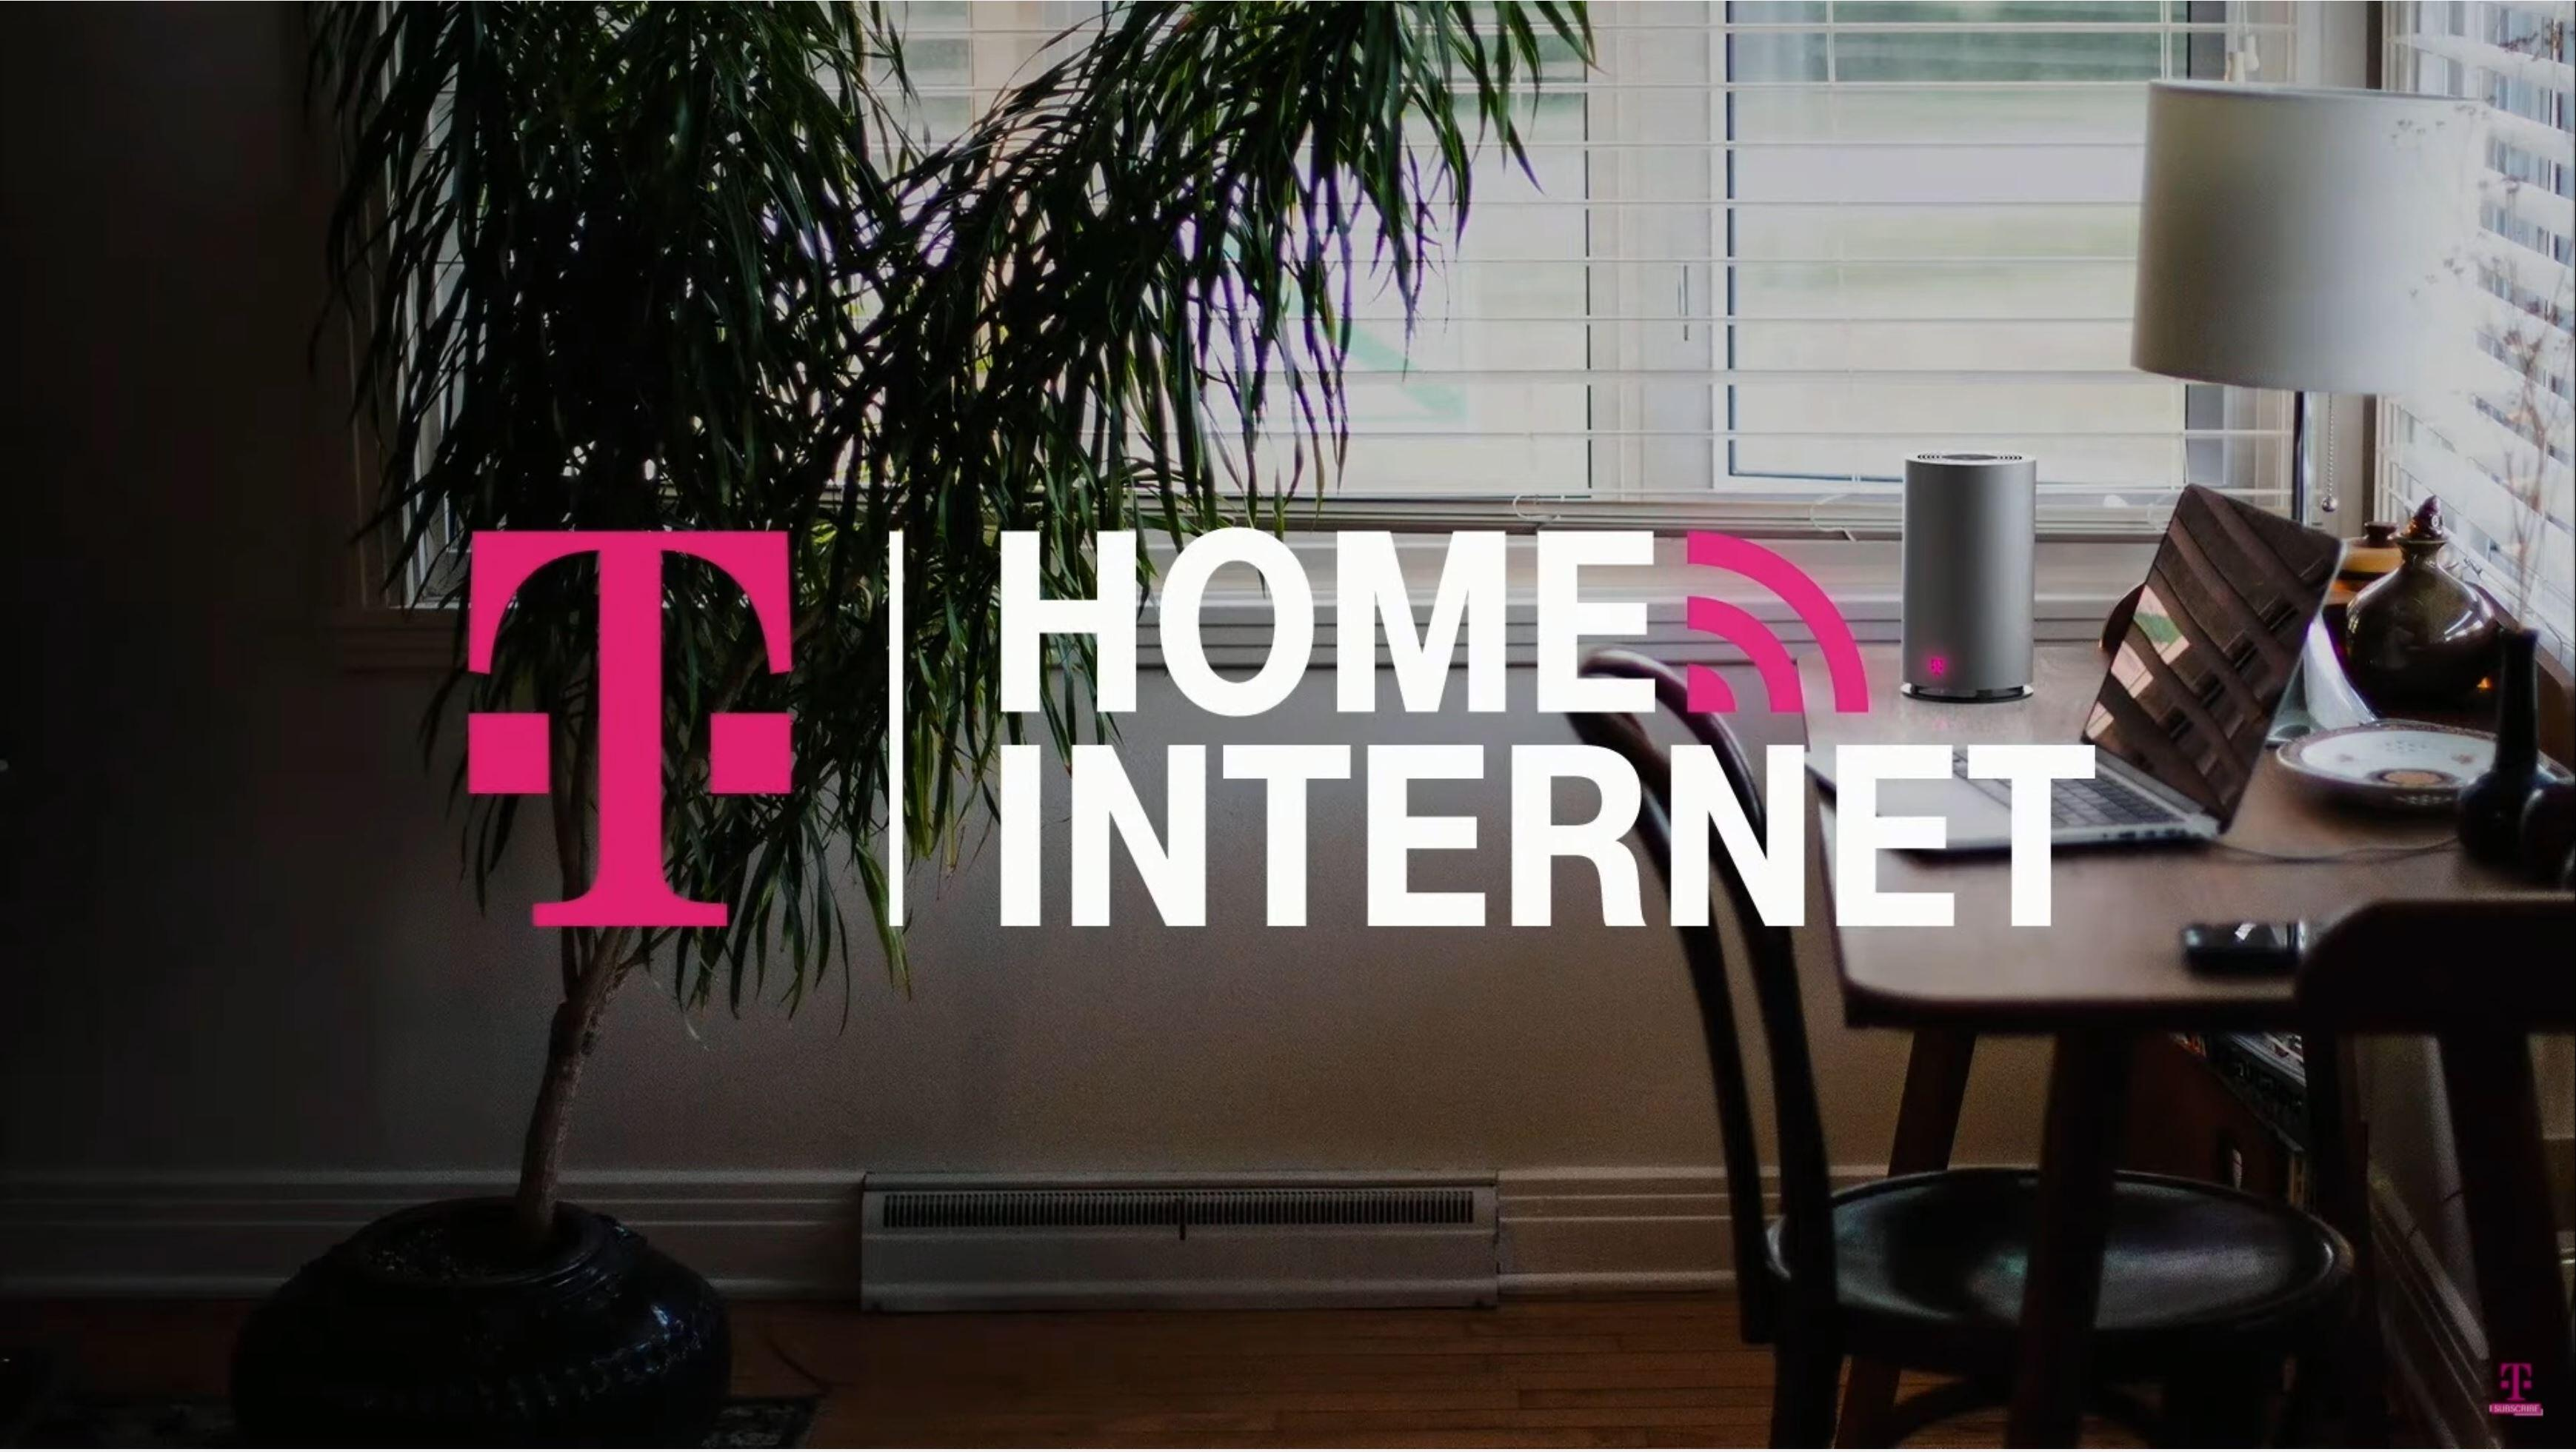 Video: T-Mobile announces $60 Home Internet is available nationwide